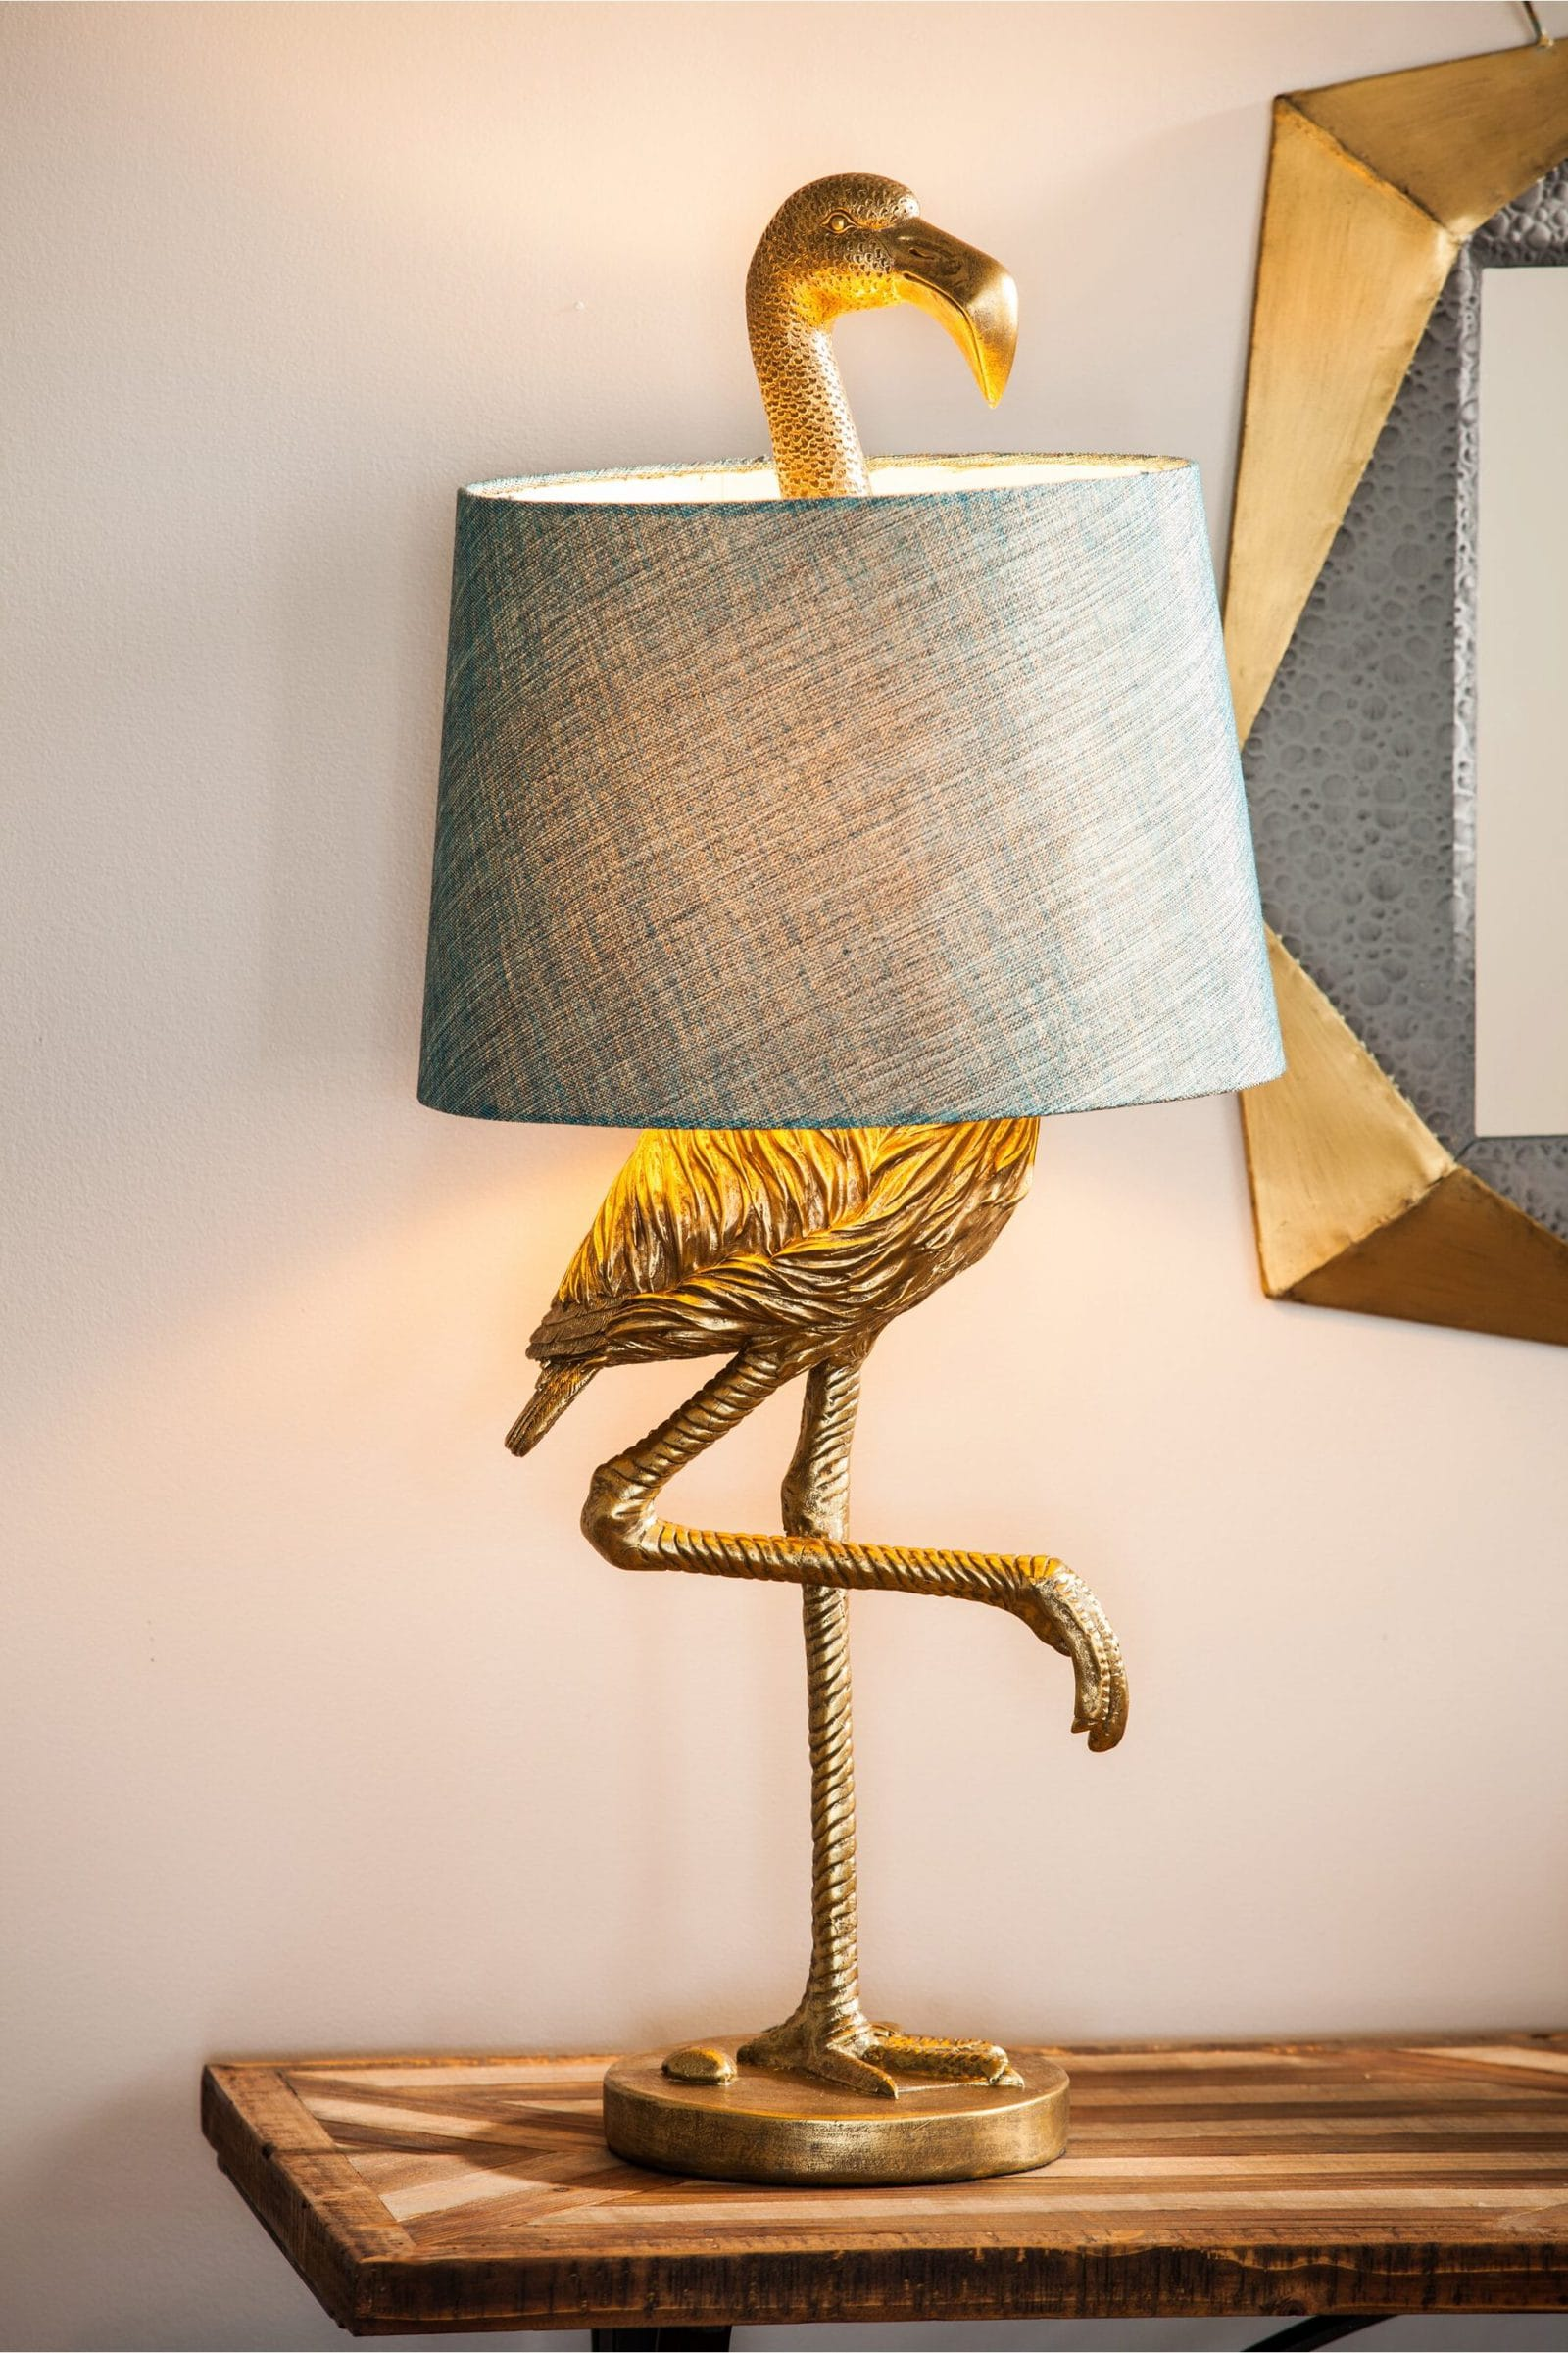 Let's Talk about THE Gold Flamingo Lamp